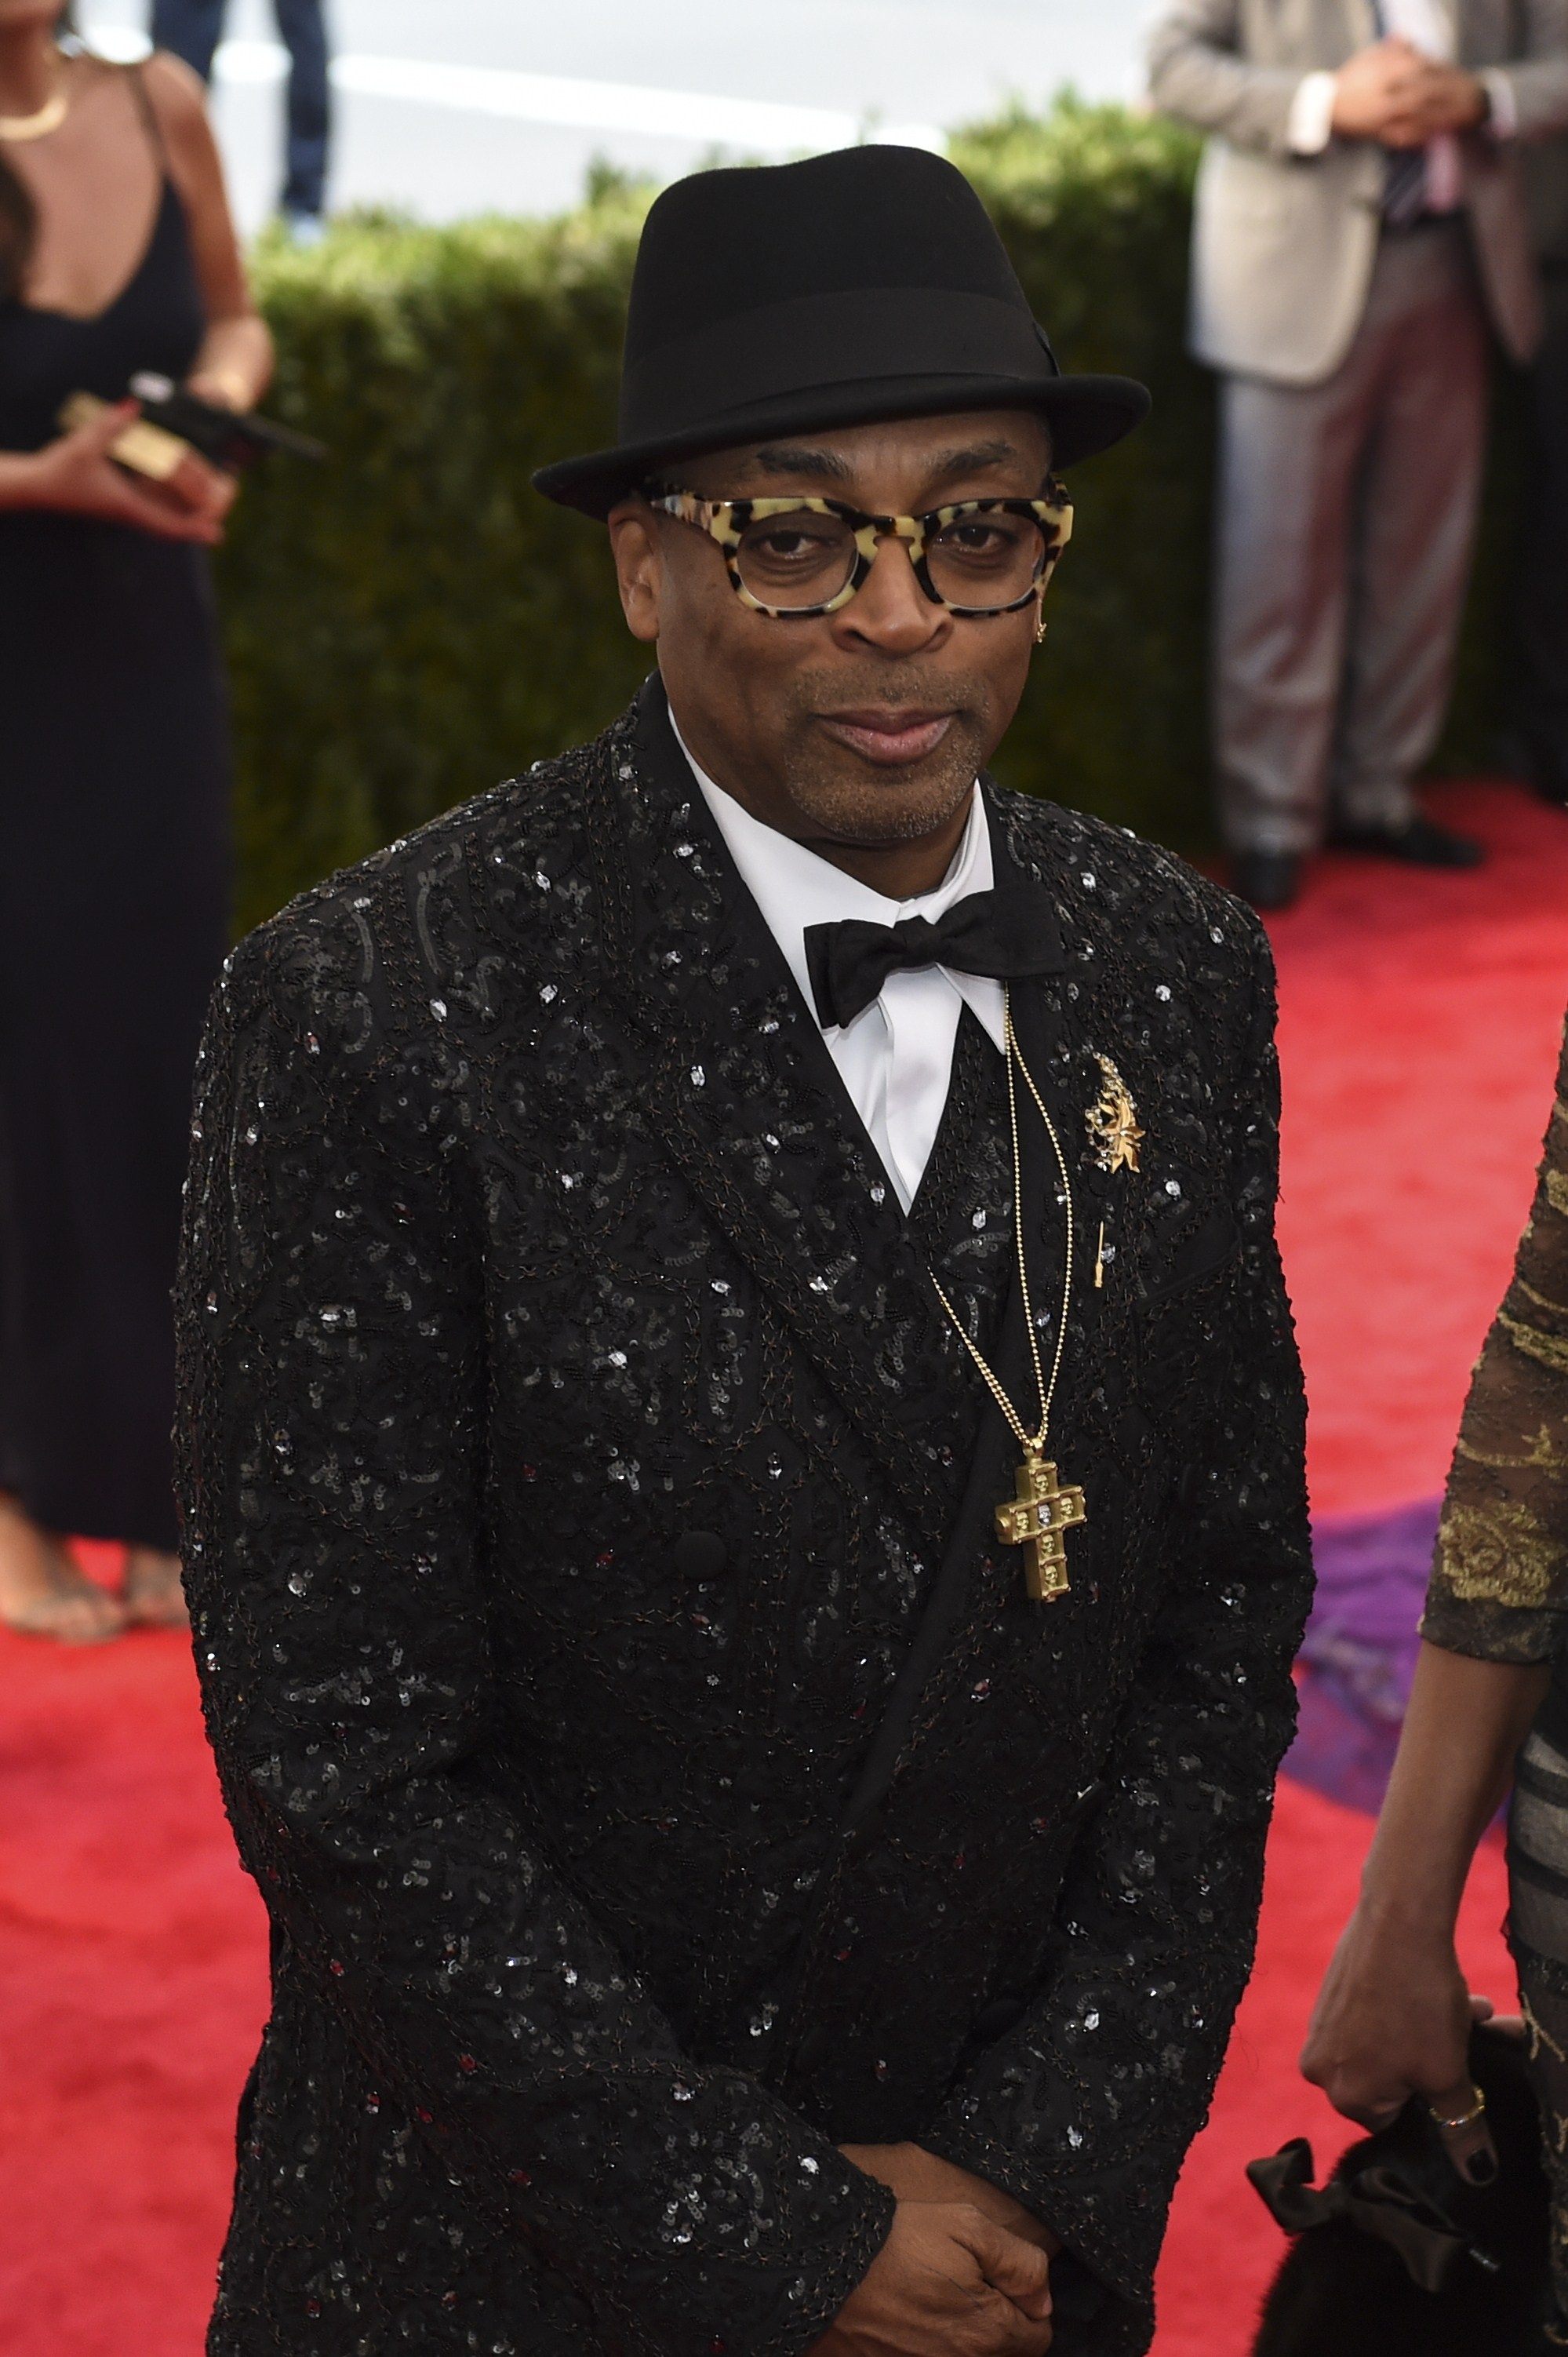 Spike Lee arrives at the Costume Institute Gala Benefit at The Metropolitan Museum of Art May 5, 2015 in New York.